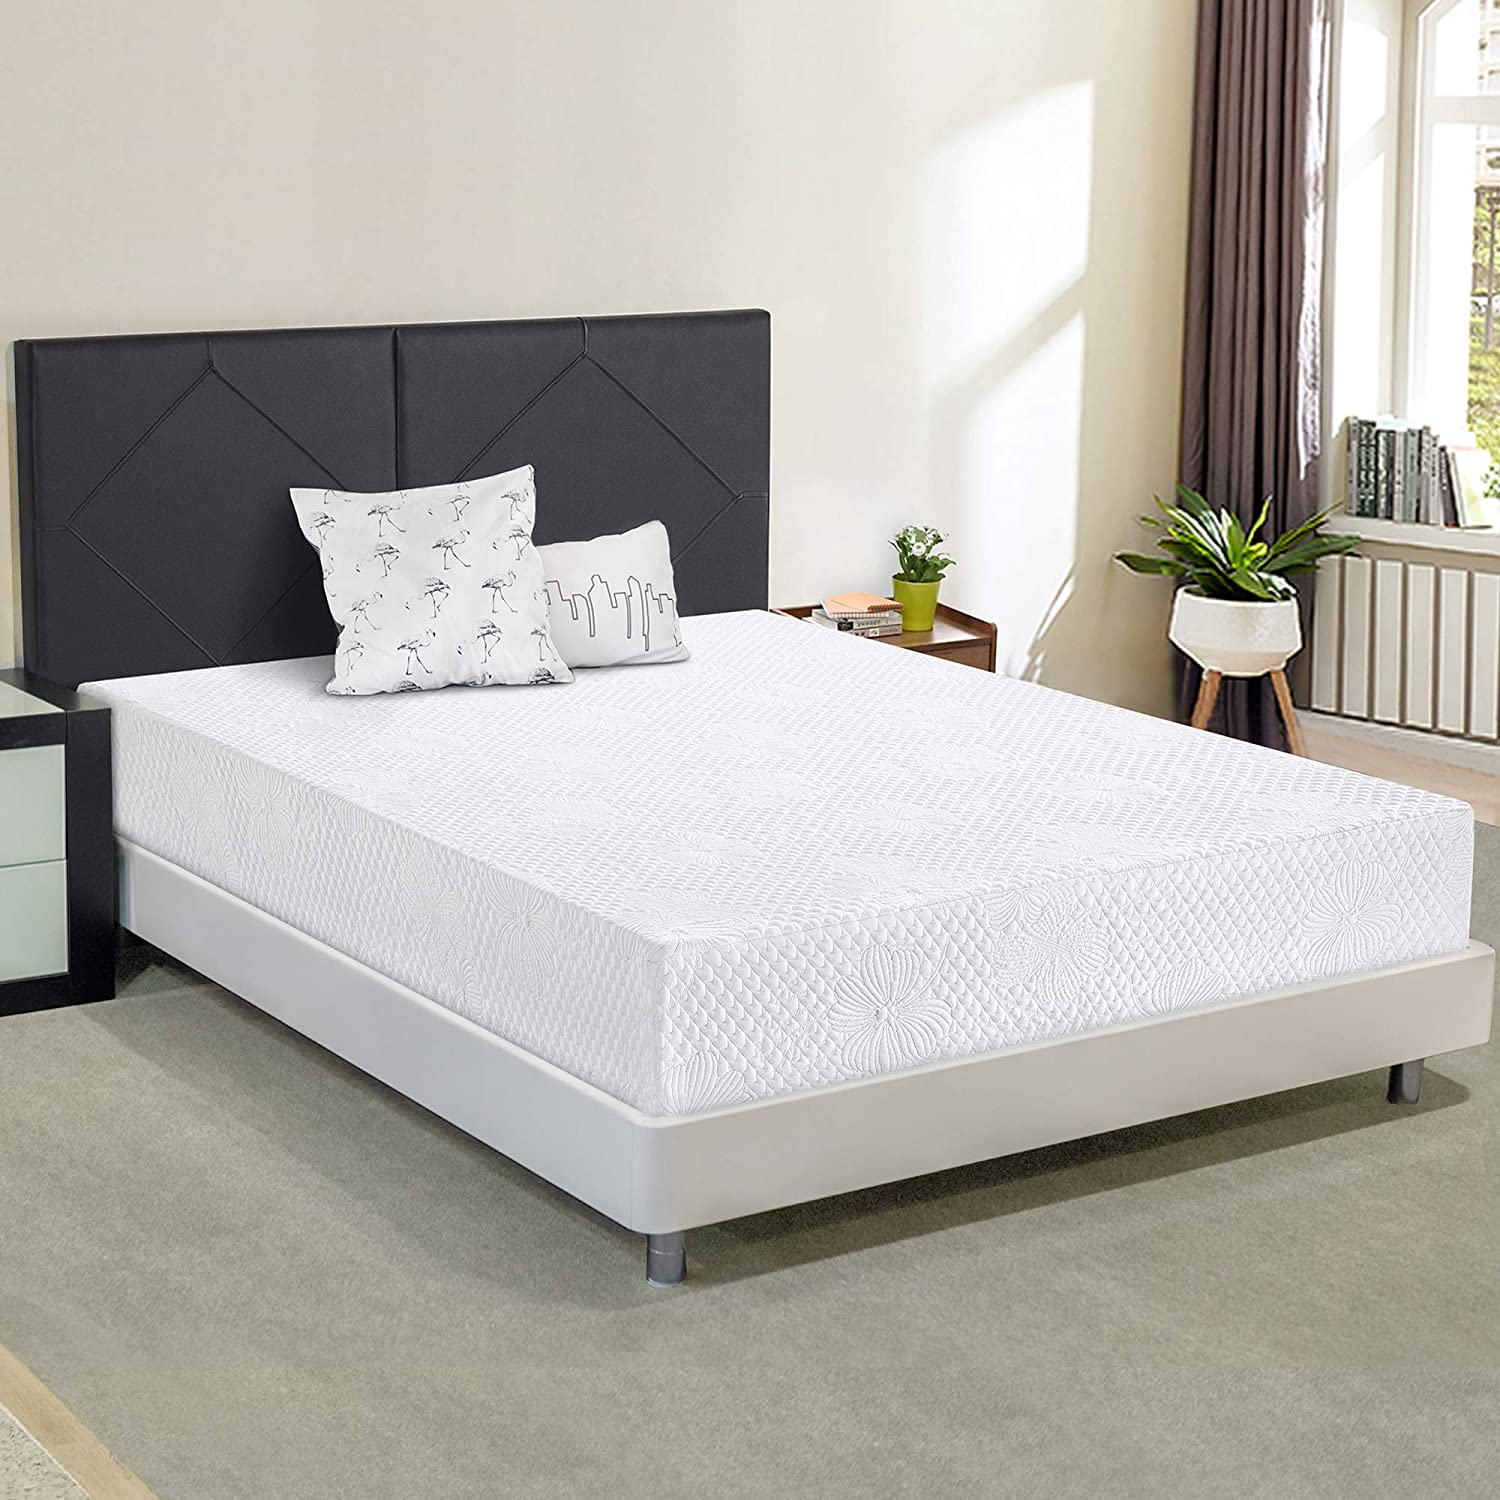 Ecos Living 6 Inch Multi-Layer Memory Foam Mattress,White Queen